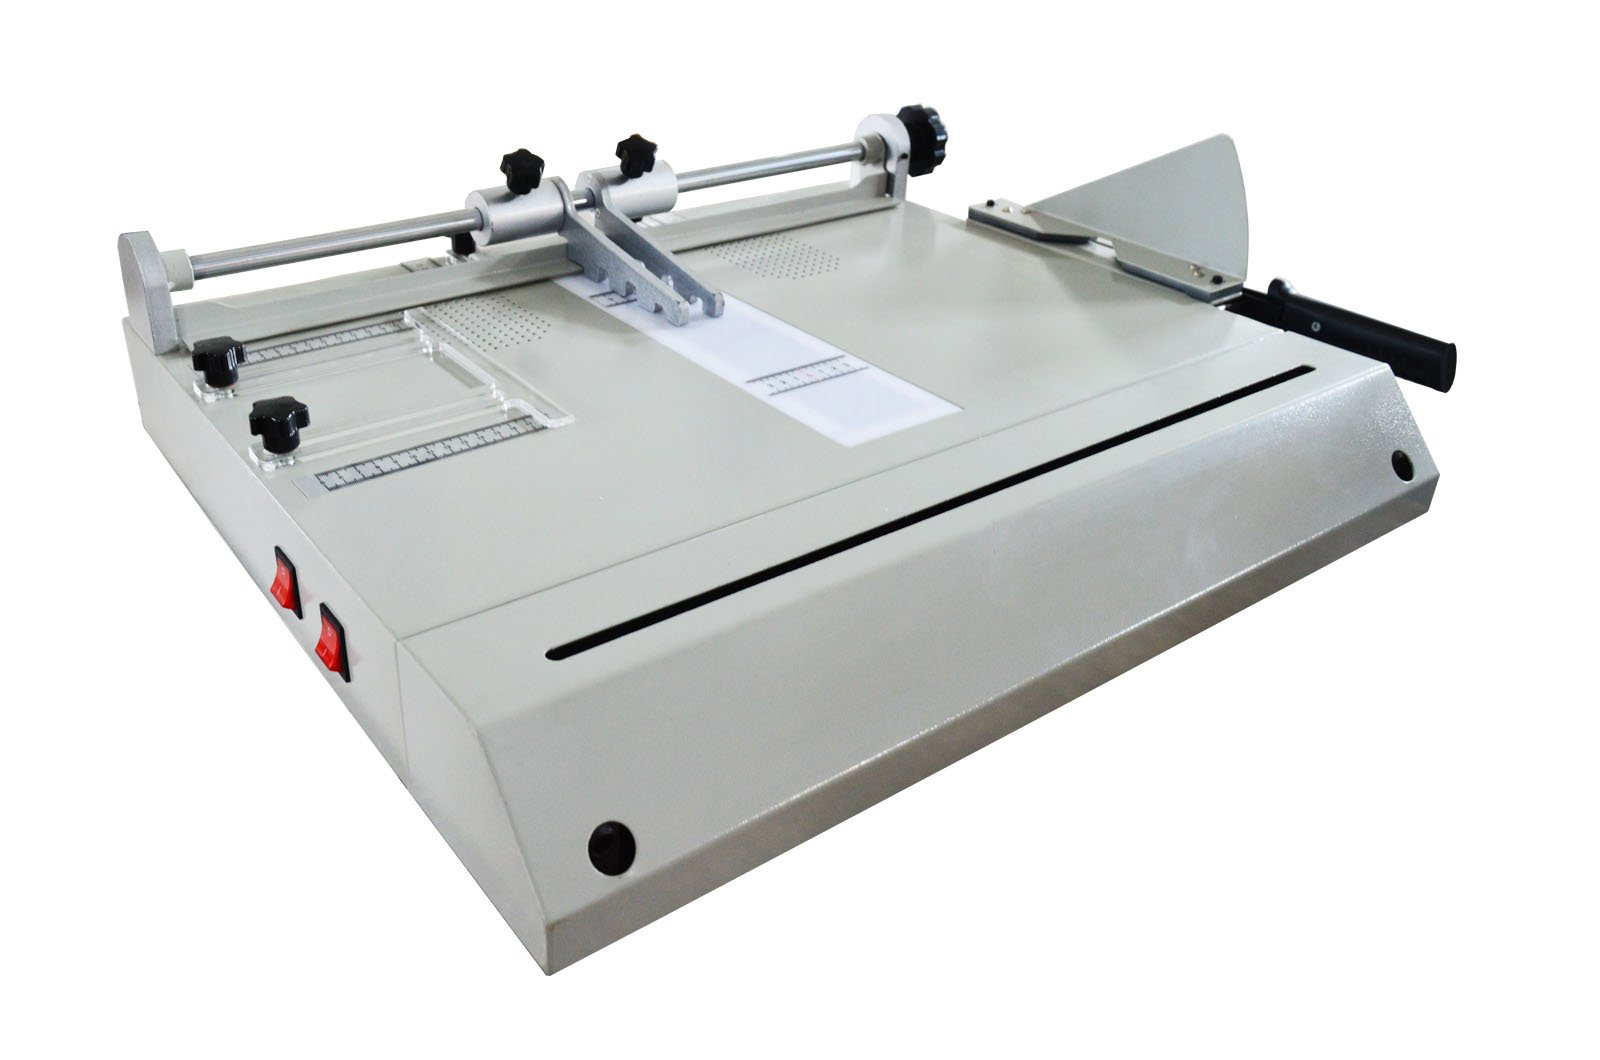 INTBUYING Hard Book Cover Making Machine 3 in 1 110V Book Shell Making for Photo Album Brochures